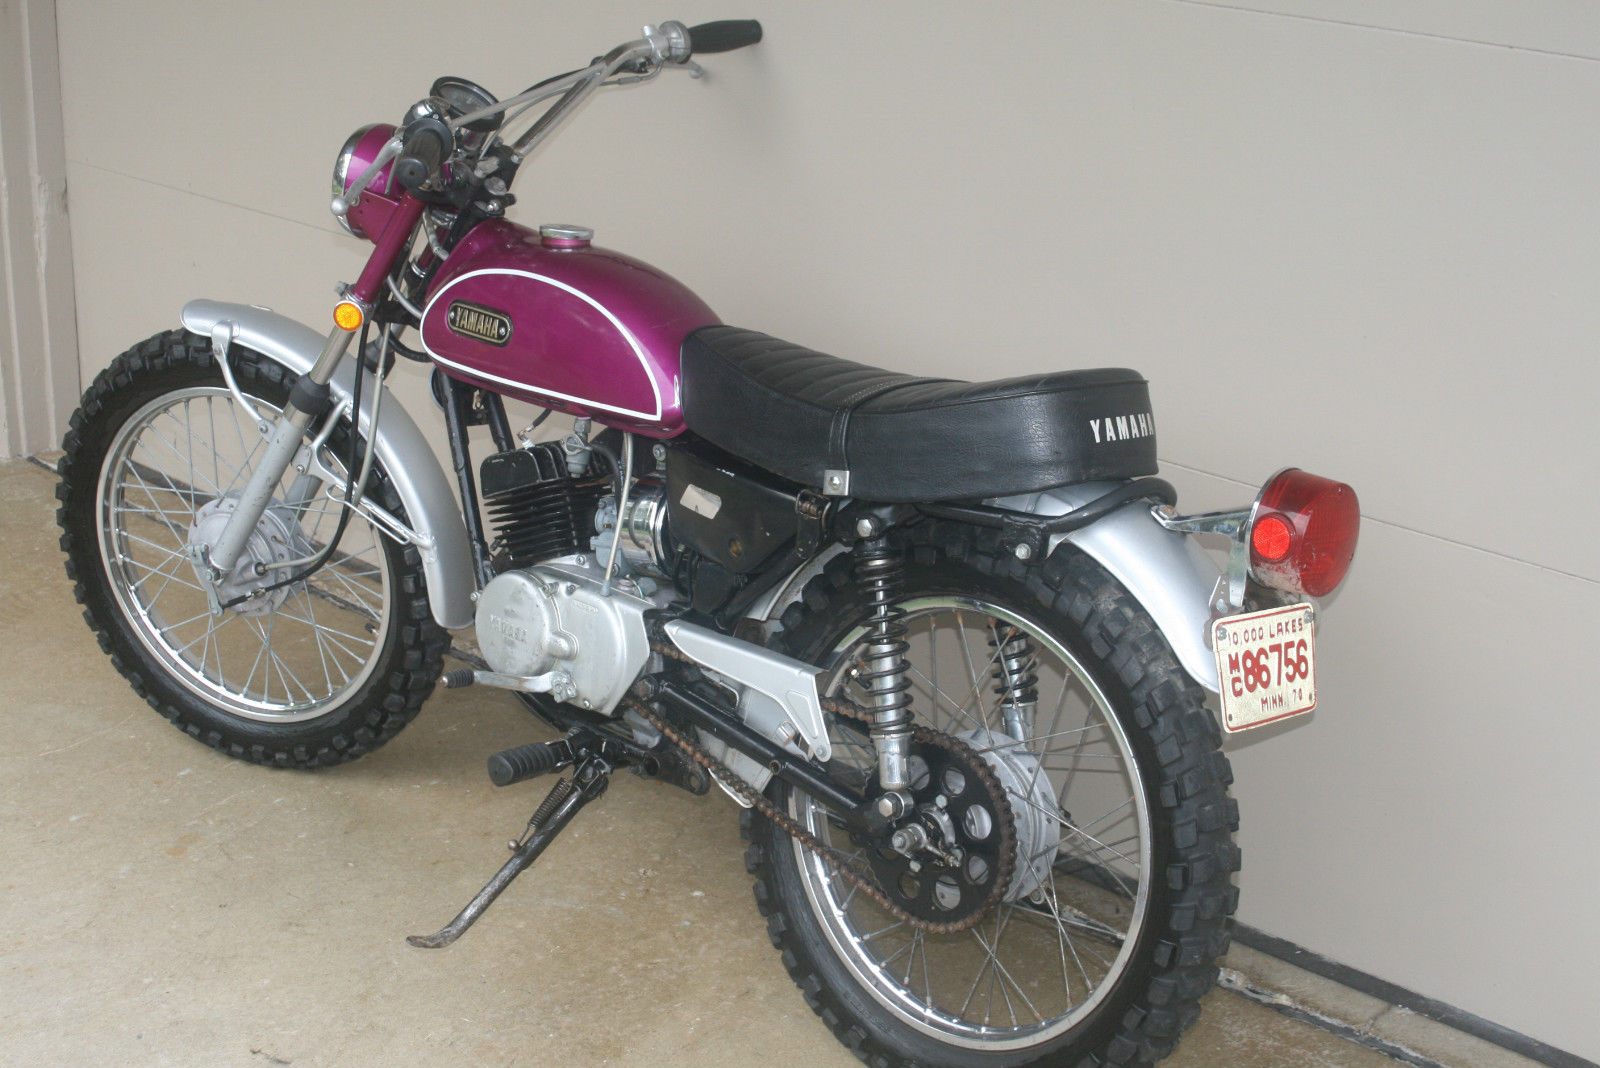 1970 yamaha ht1 enduro 90 original vintage time capsule classic ahrma. Black Bedroom Furniture Sets. Home Design Ideas